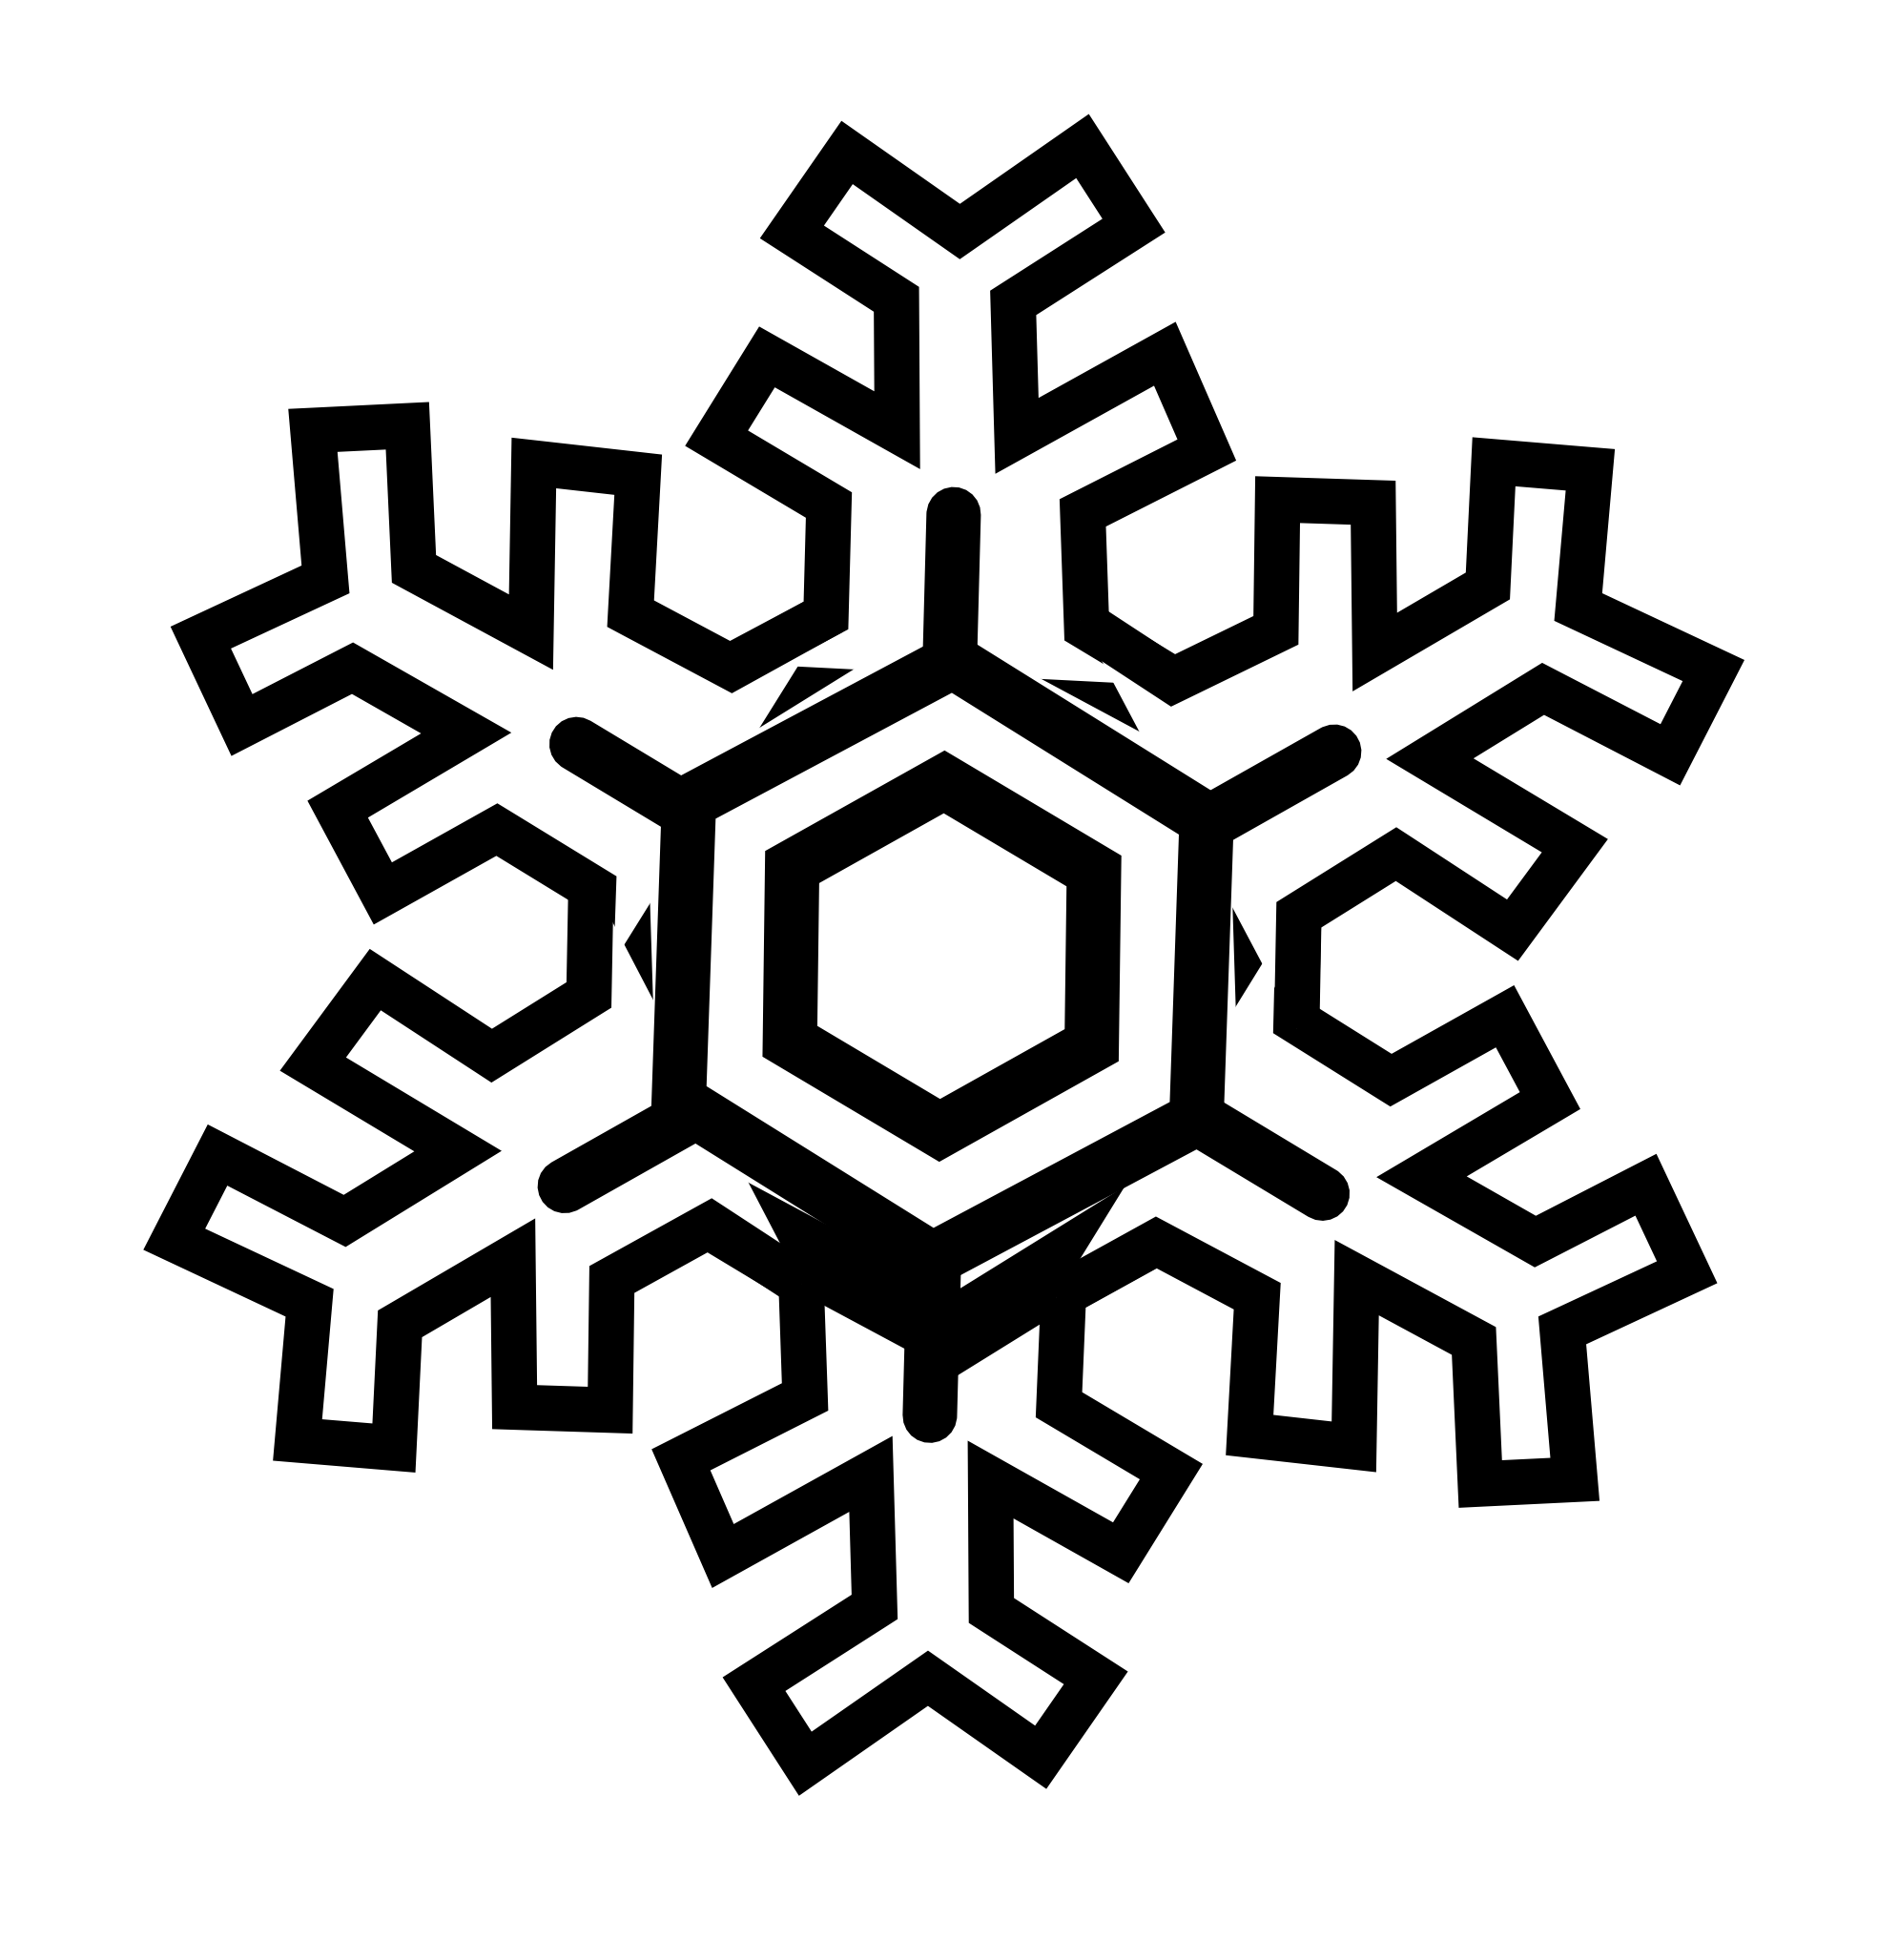 Snowflakes clipart black and white. Snow flake clip art